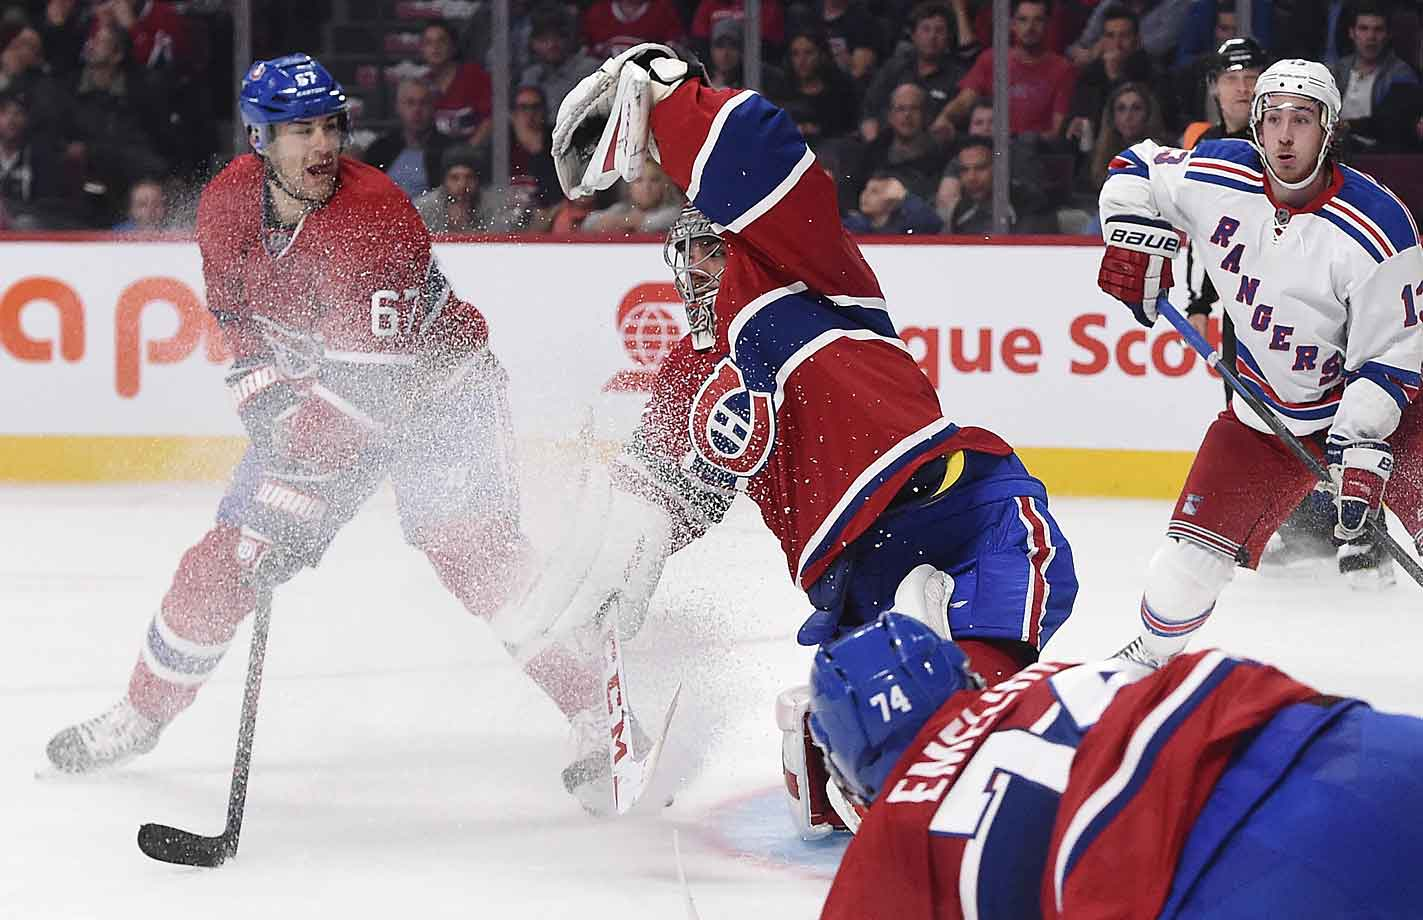 Save and a beauty. As October drew to a close, the Canadiens and their keeper were off to an 8-2-0 start that was tied with the Ducks for the league's best record.